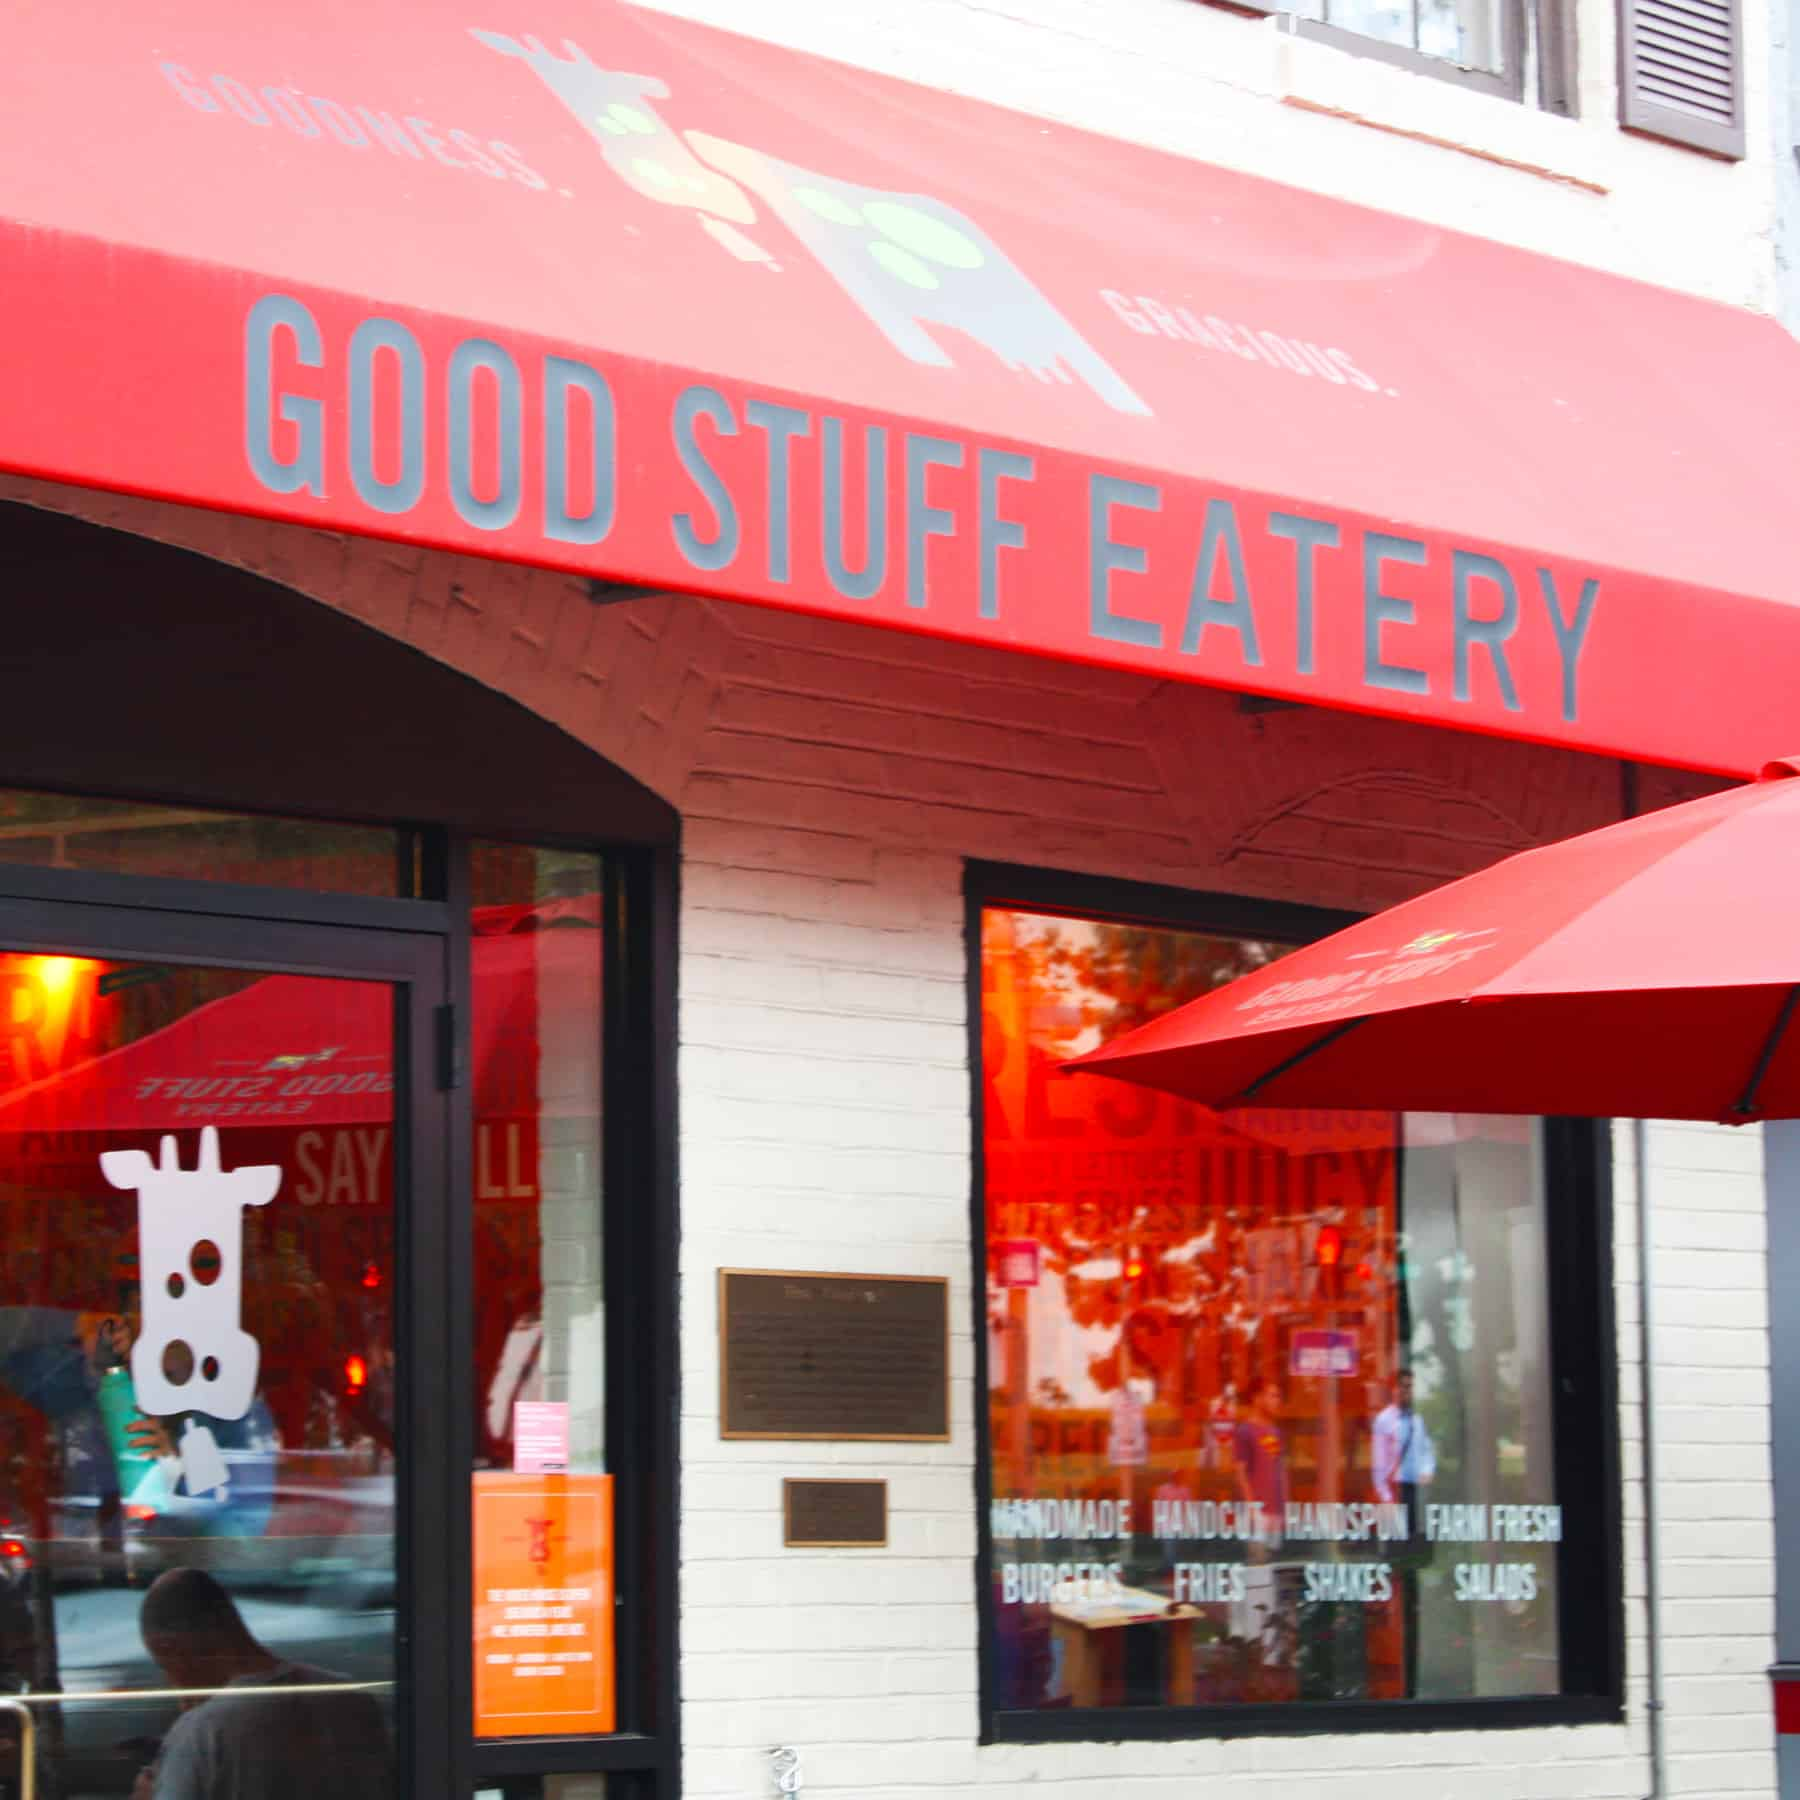 Un panino presidenziale a Washington da Good Stuff Eatery